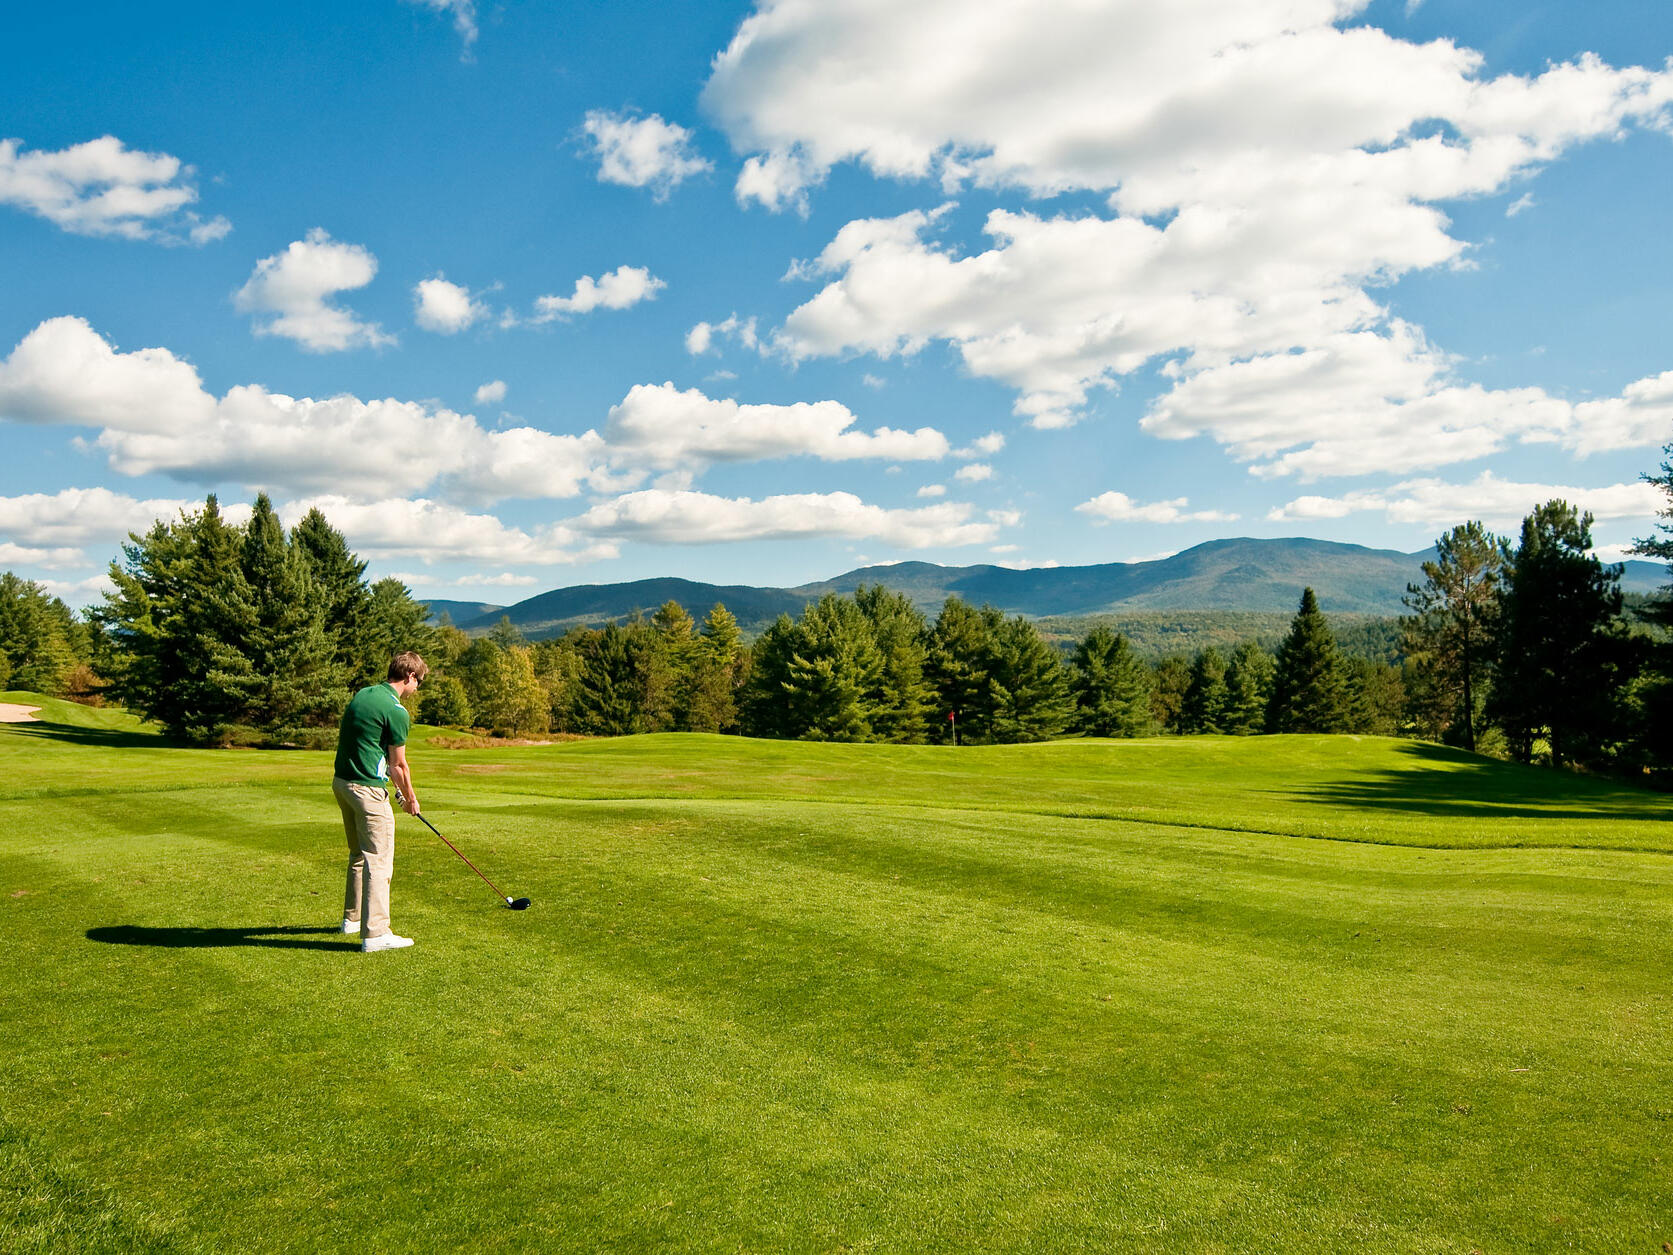 Golf Course at the Stowe Country Club near Topnotch Stowe Resort